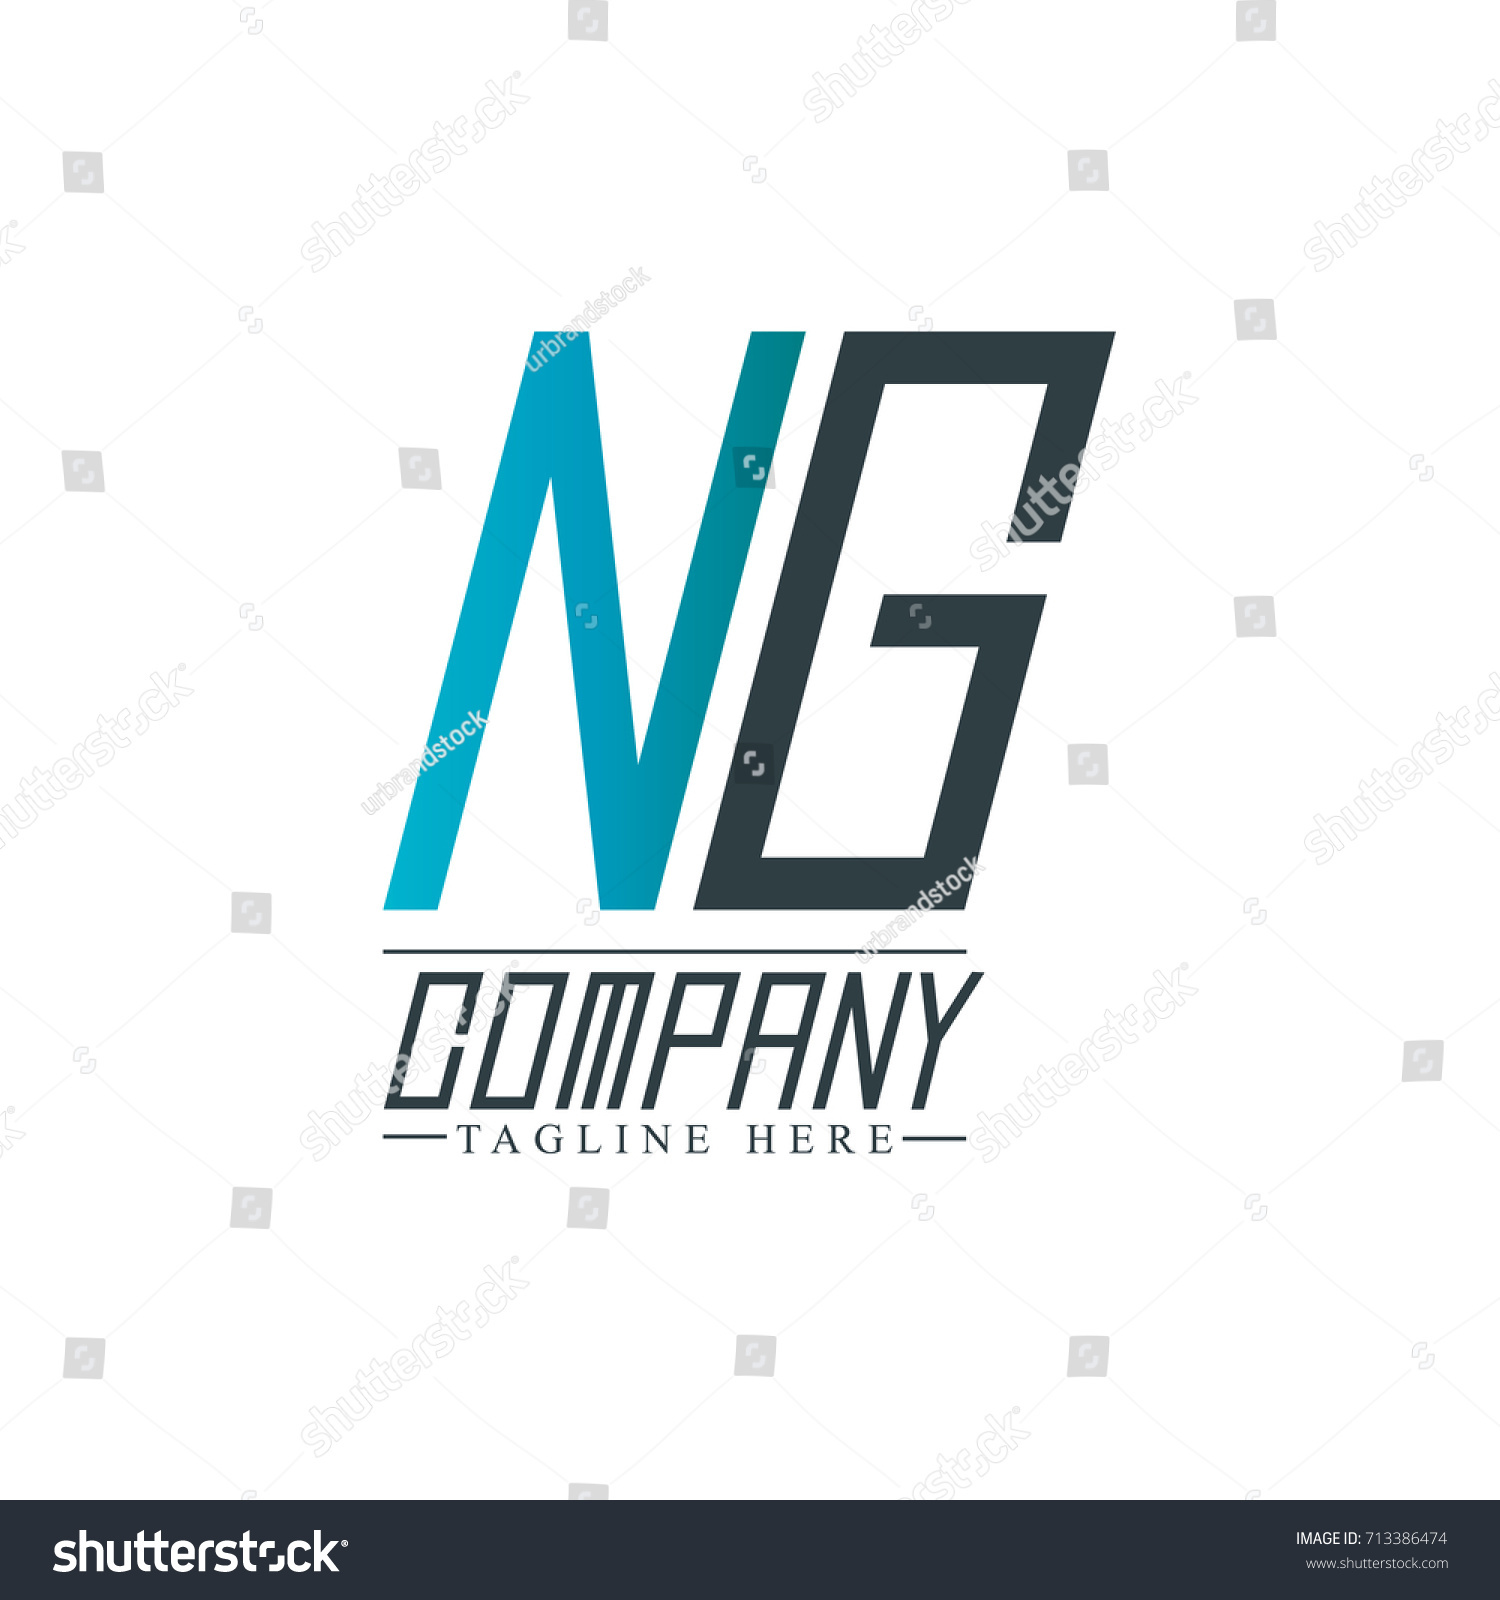 Excellent ng template photos resume ideas namanasa stunning ng template ideas resume ideas namanasa pronofoot35fo Choice Image